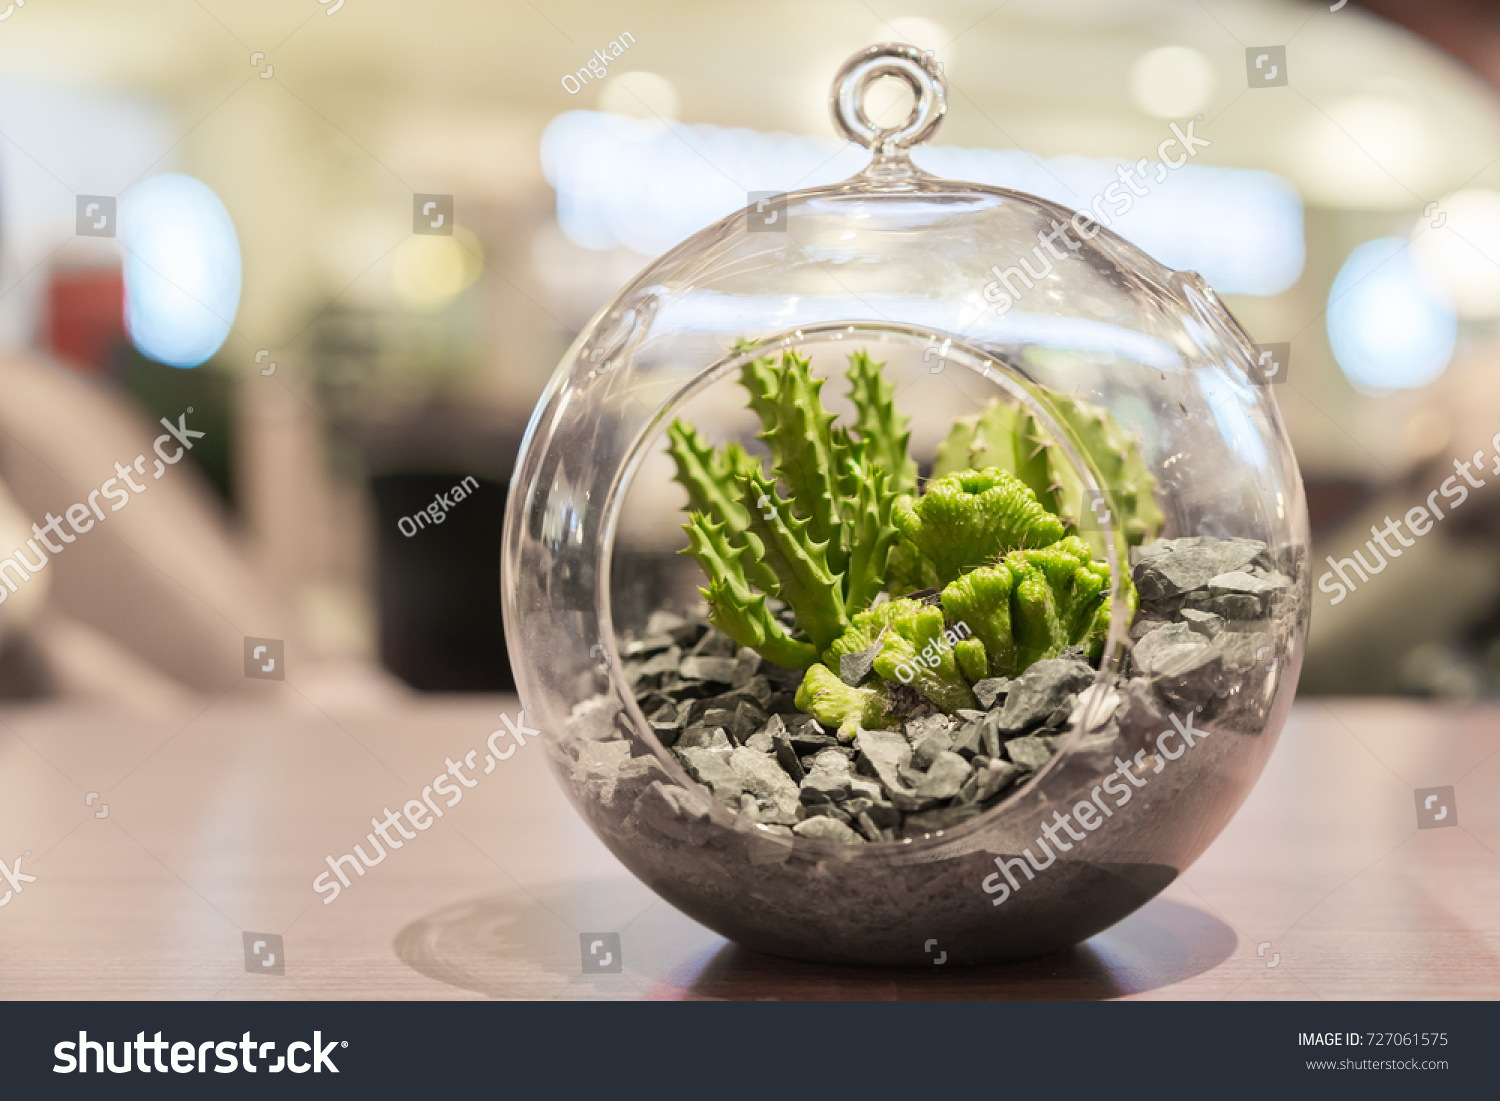 Catcus Glass Terrarium On Wood Table Stock Photo Edit Now 727061575